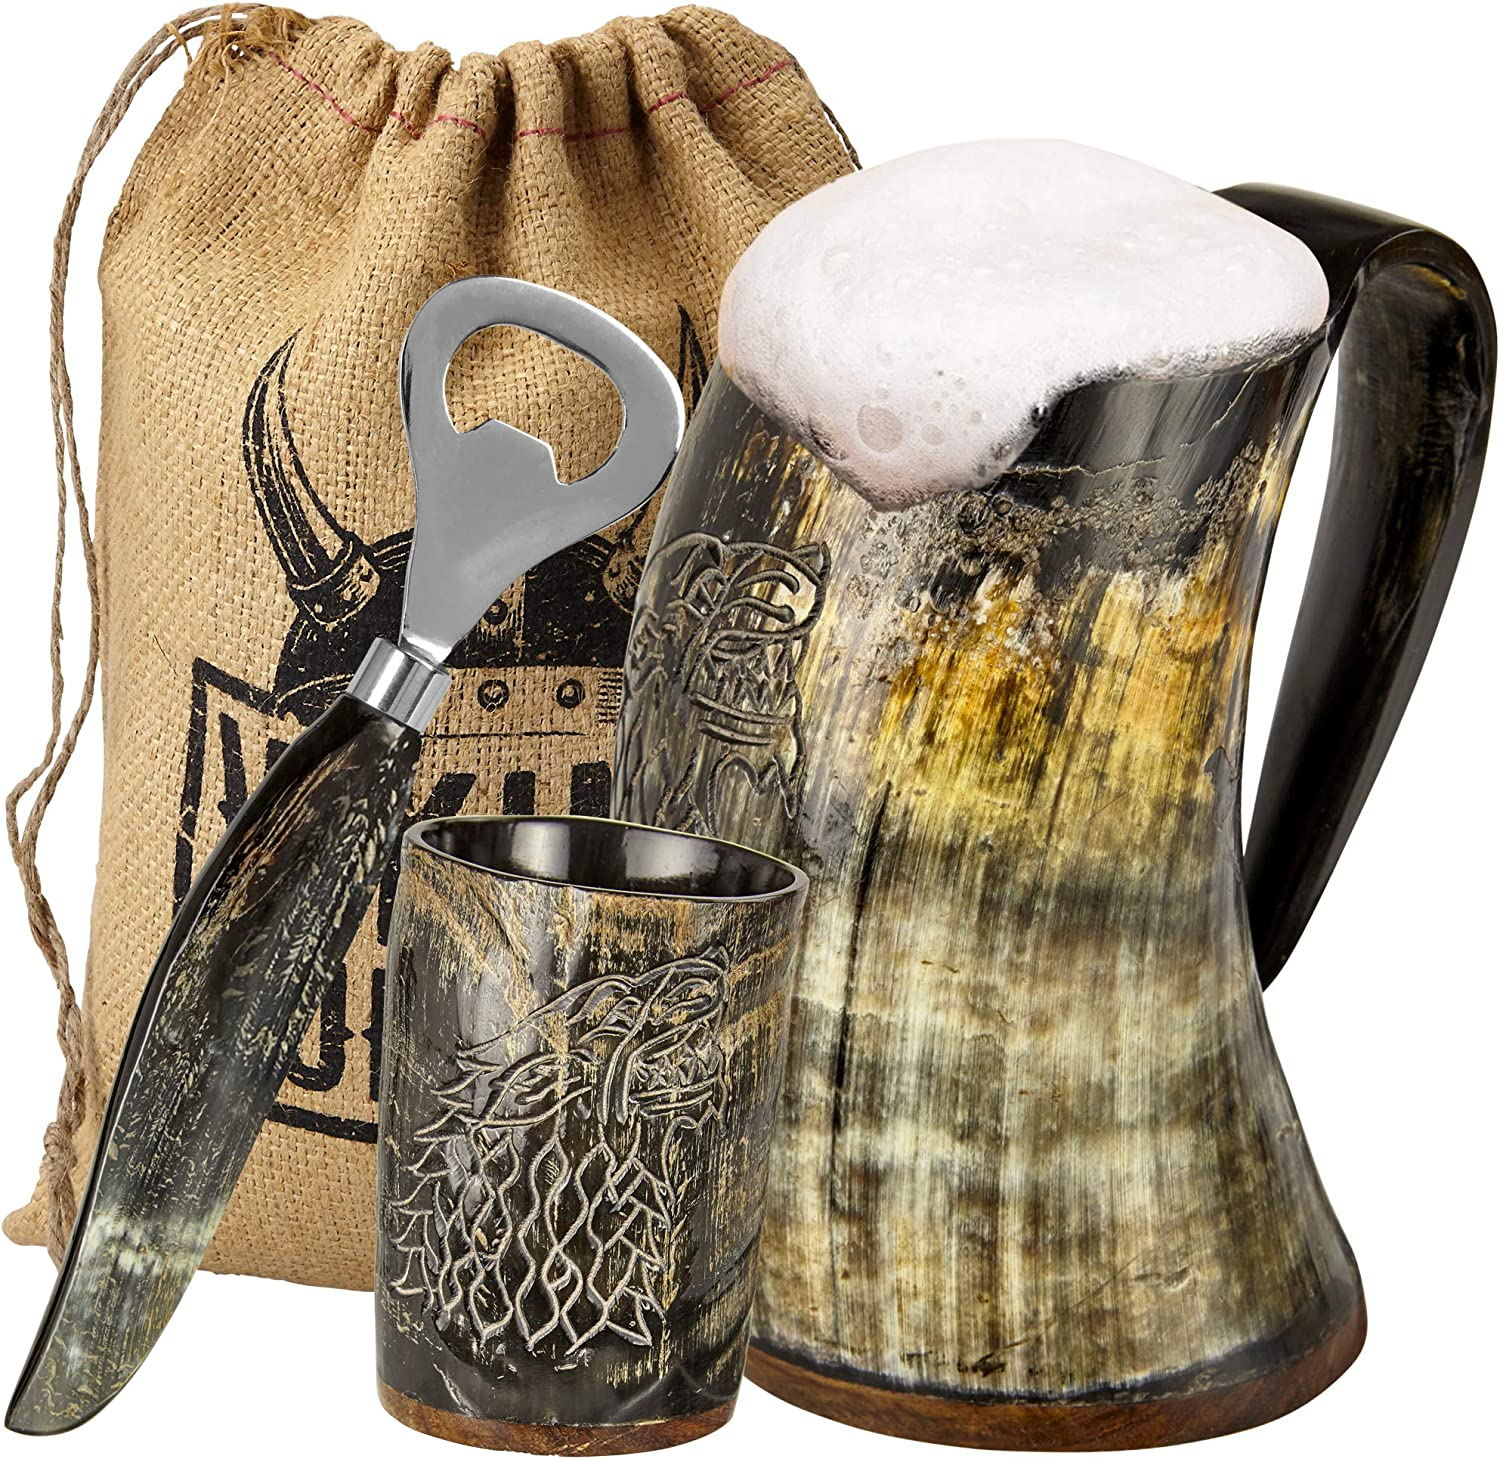 viking war goat horn drinking cup natural dishes animal cup bull horn viking alcohol cup beer mug room decor cowboy western style cornucopia